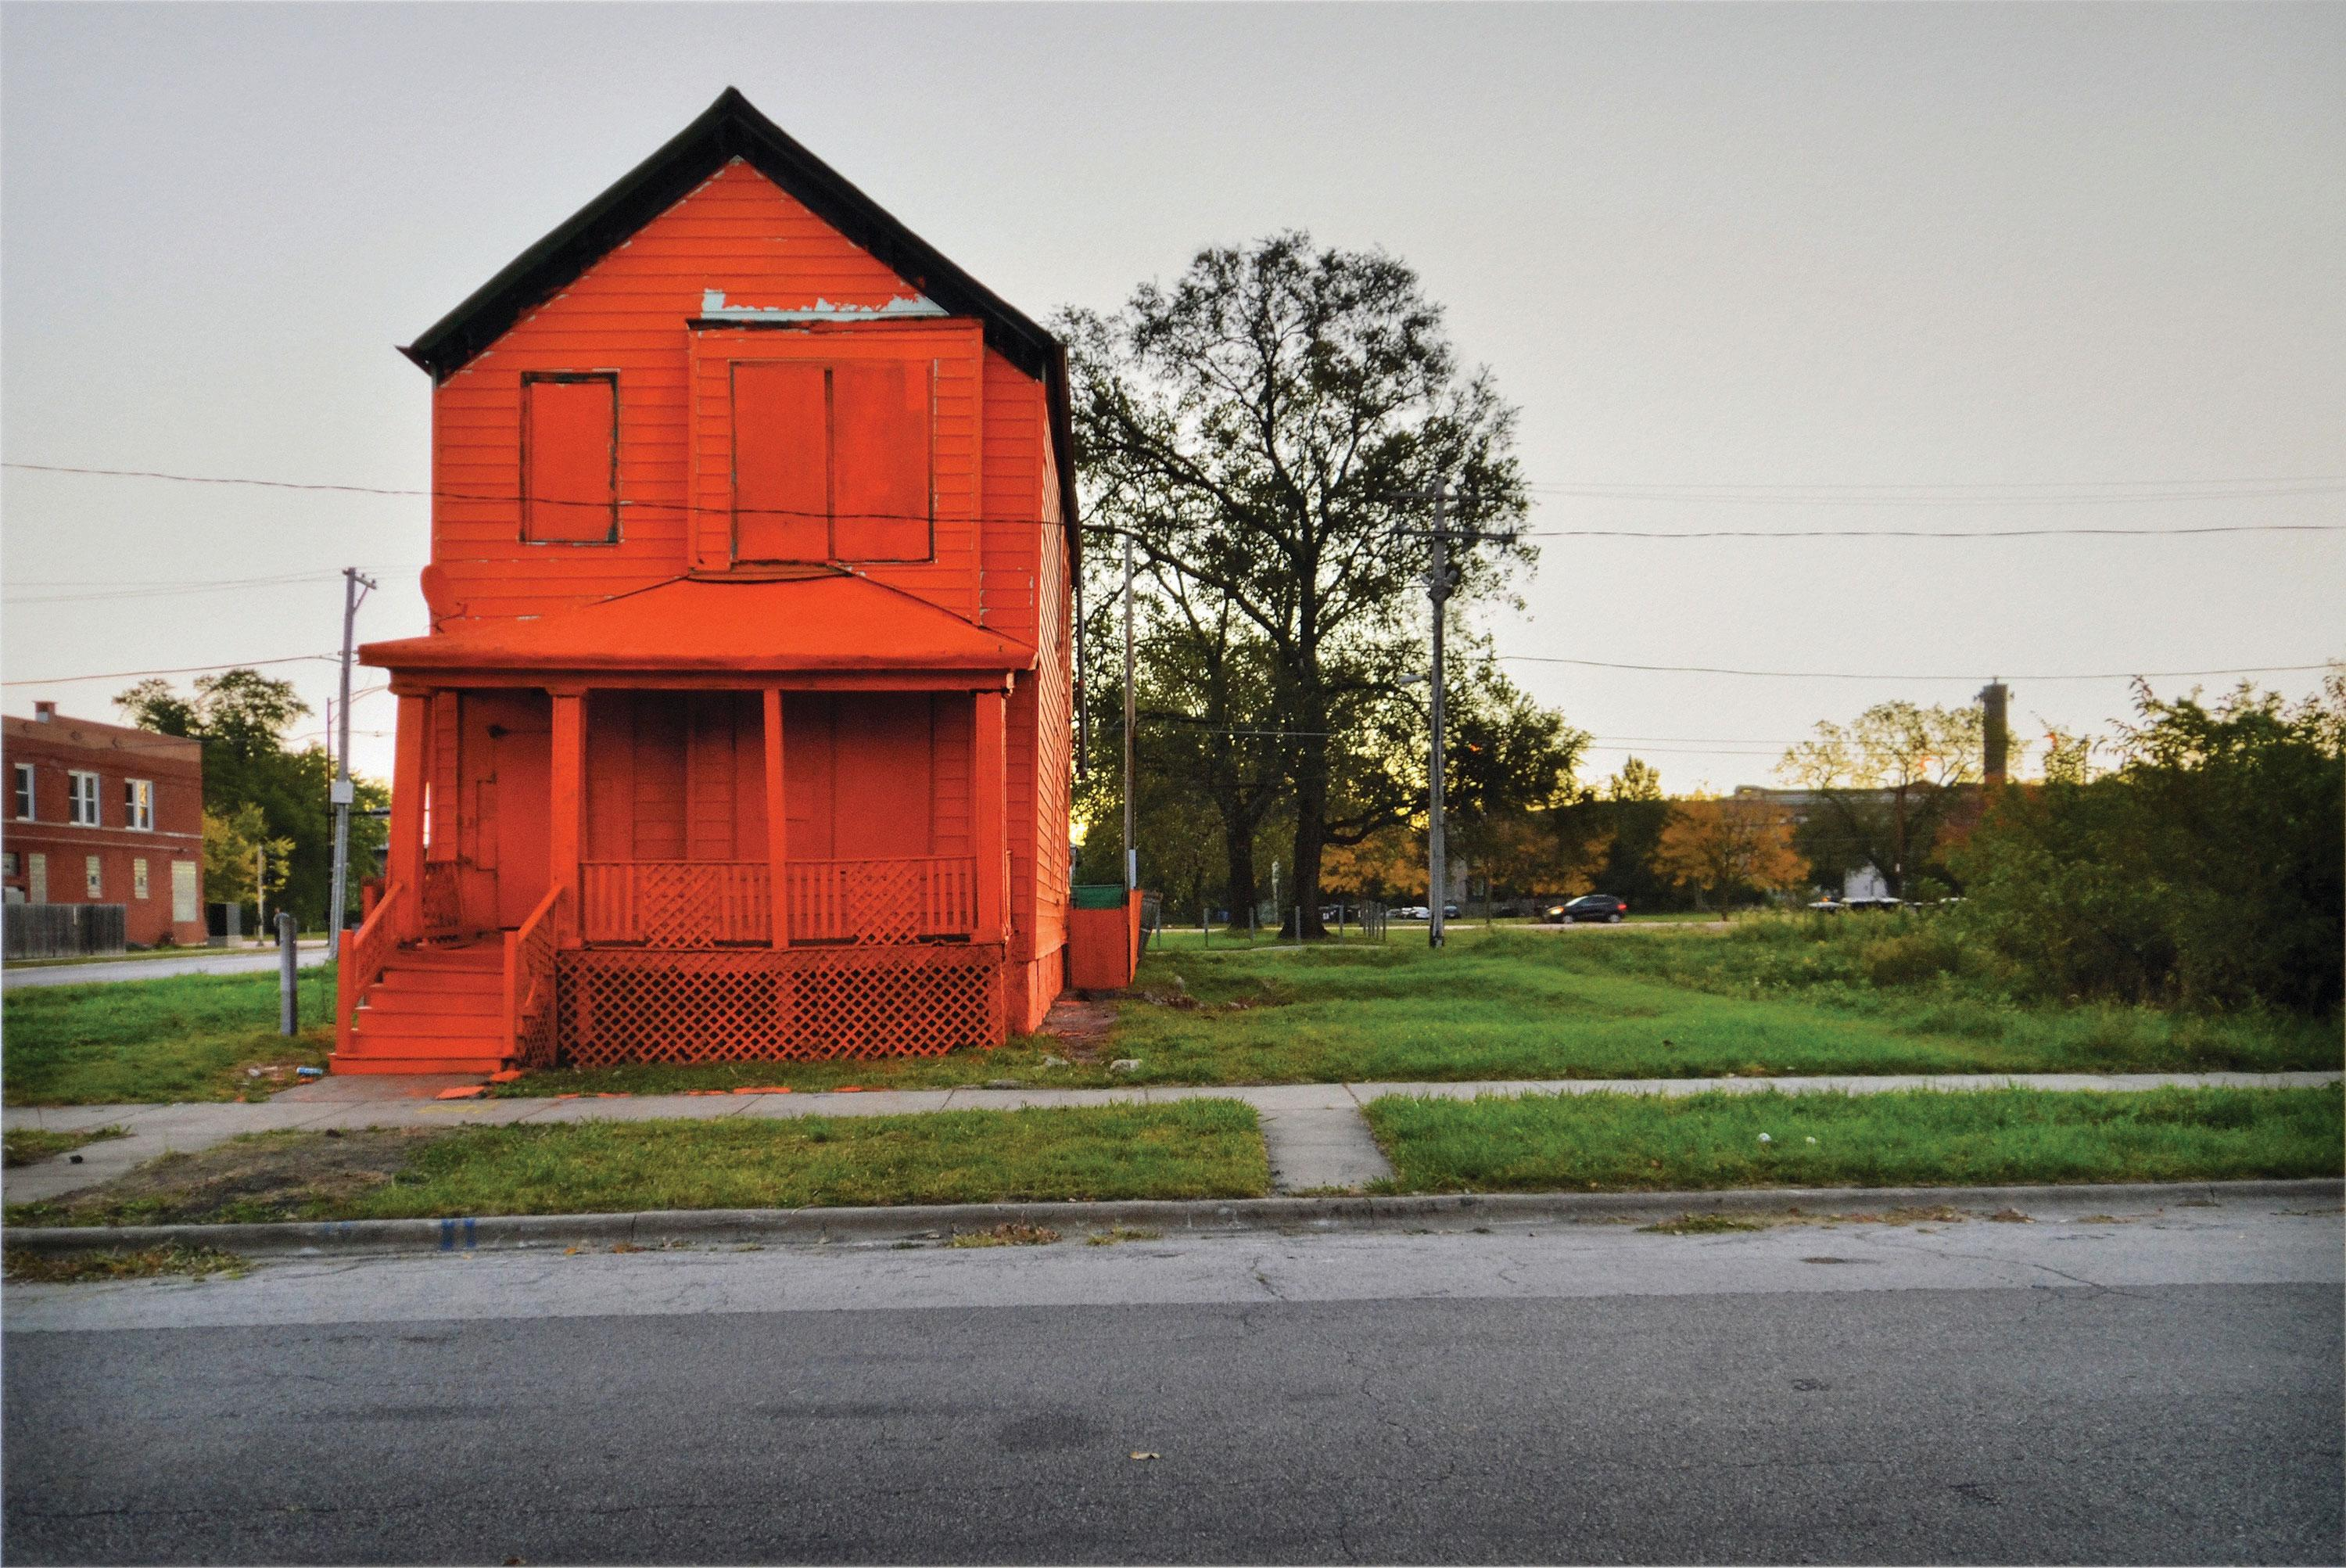 A bright red-orange house is boarded up, standing next to an empty urban lot during sunset.